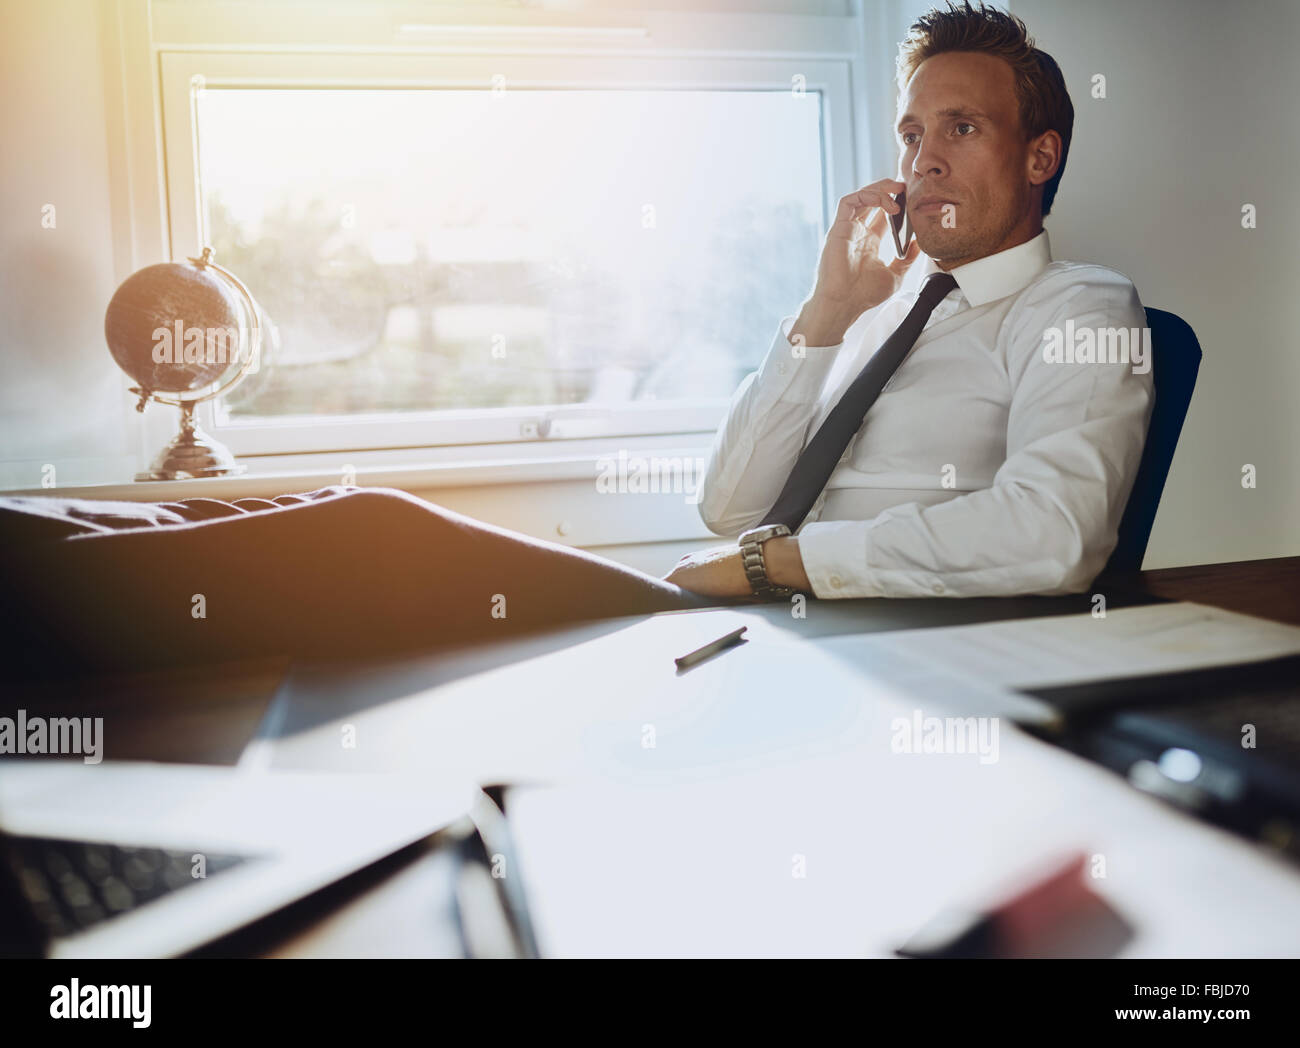 Laid back confident business man sitting at his desk with feet up talking on phone with documents on his desk Stock Photo